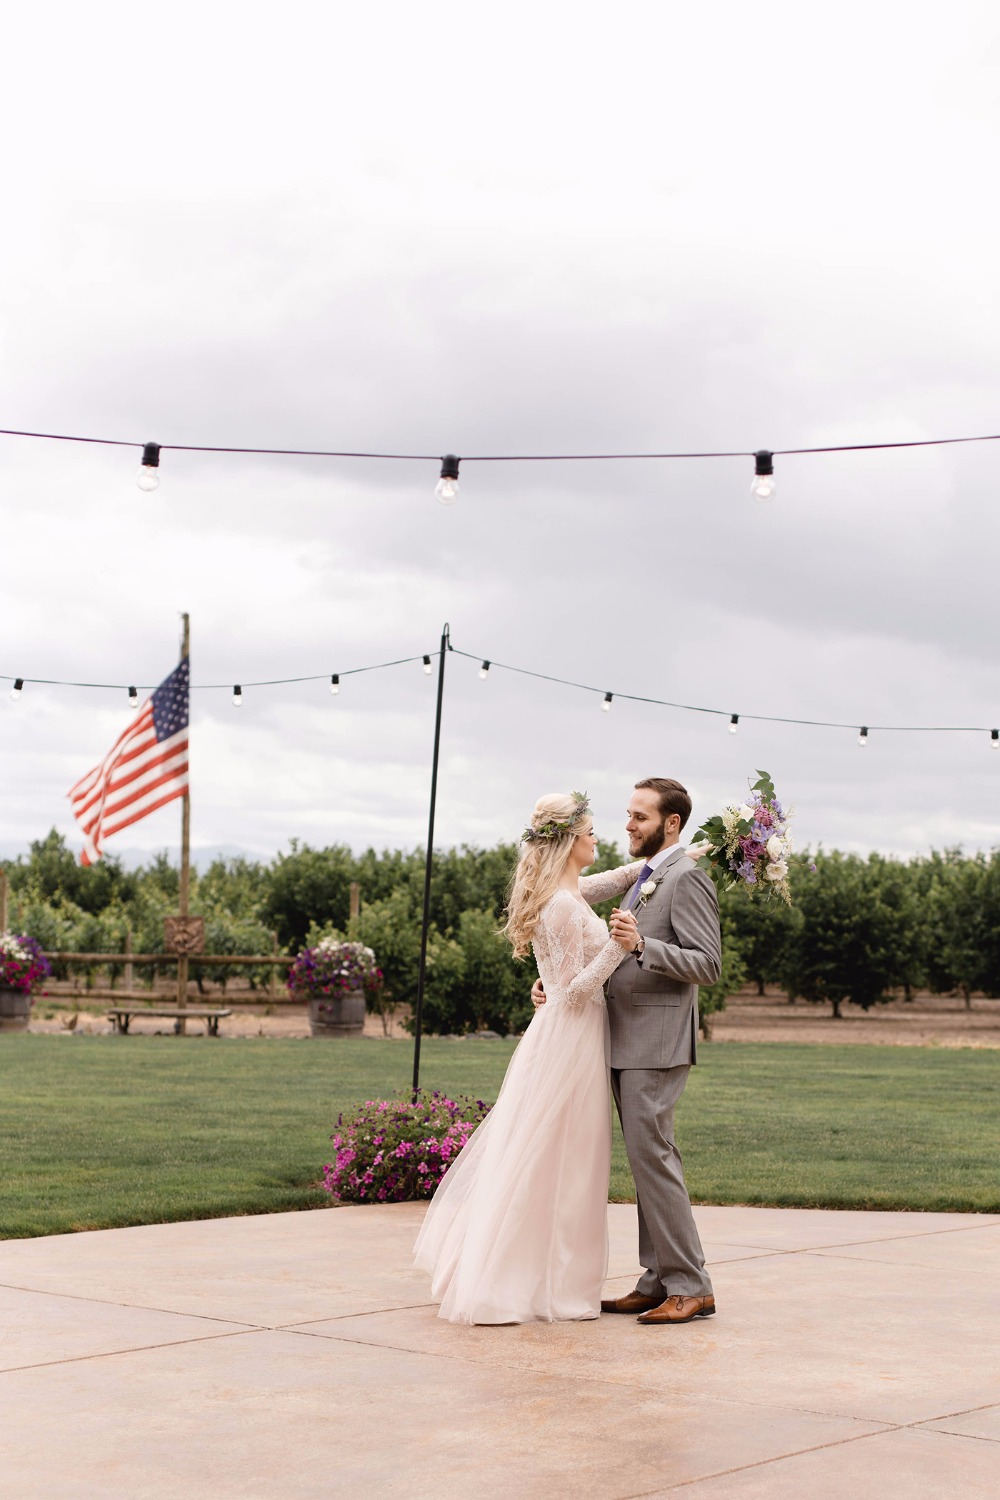 Private first wedding dance